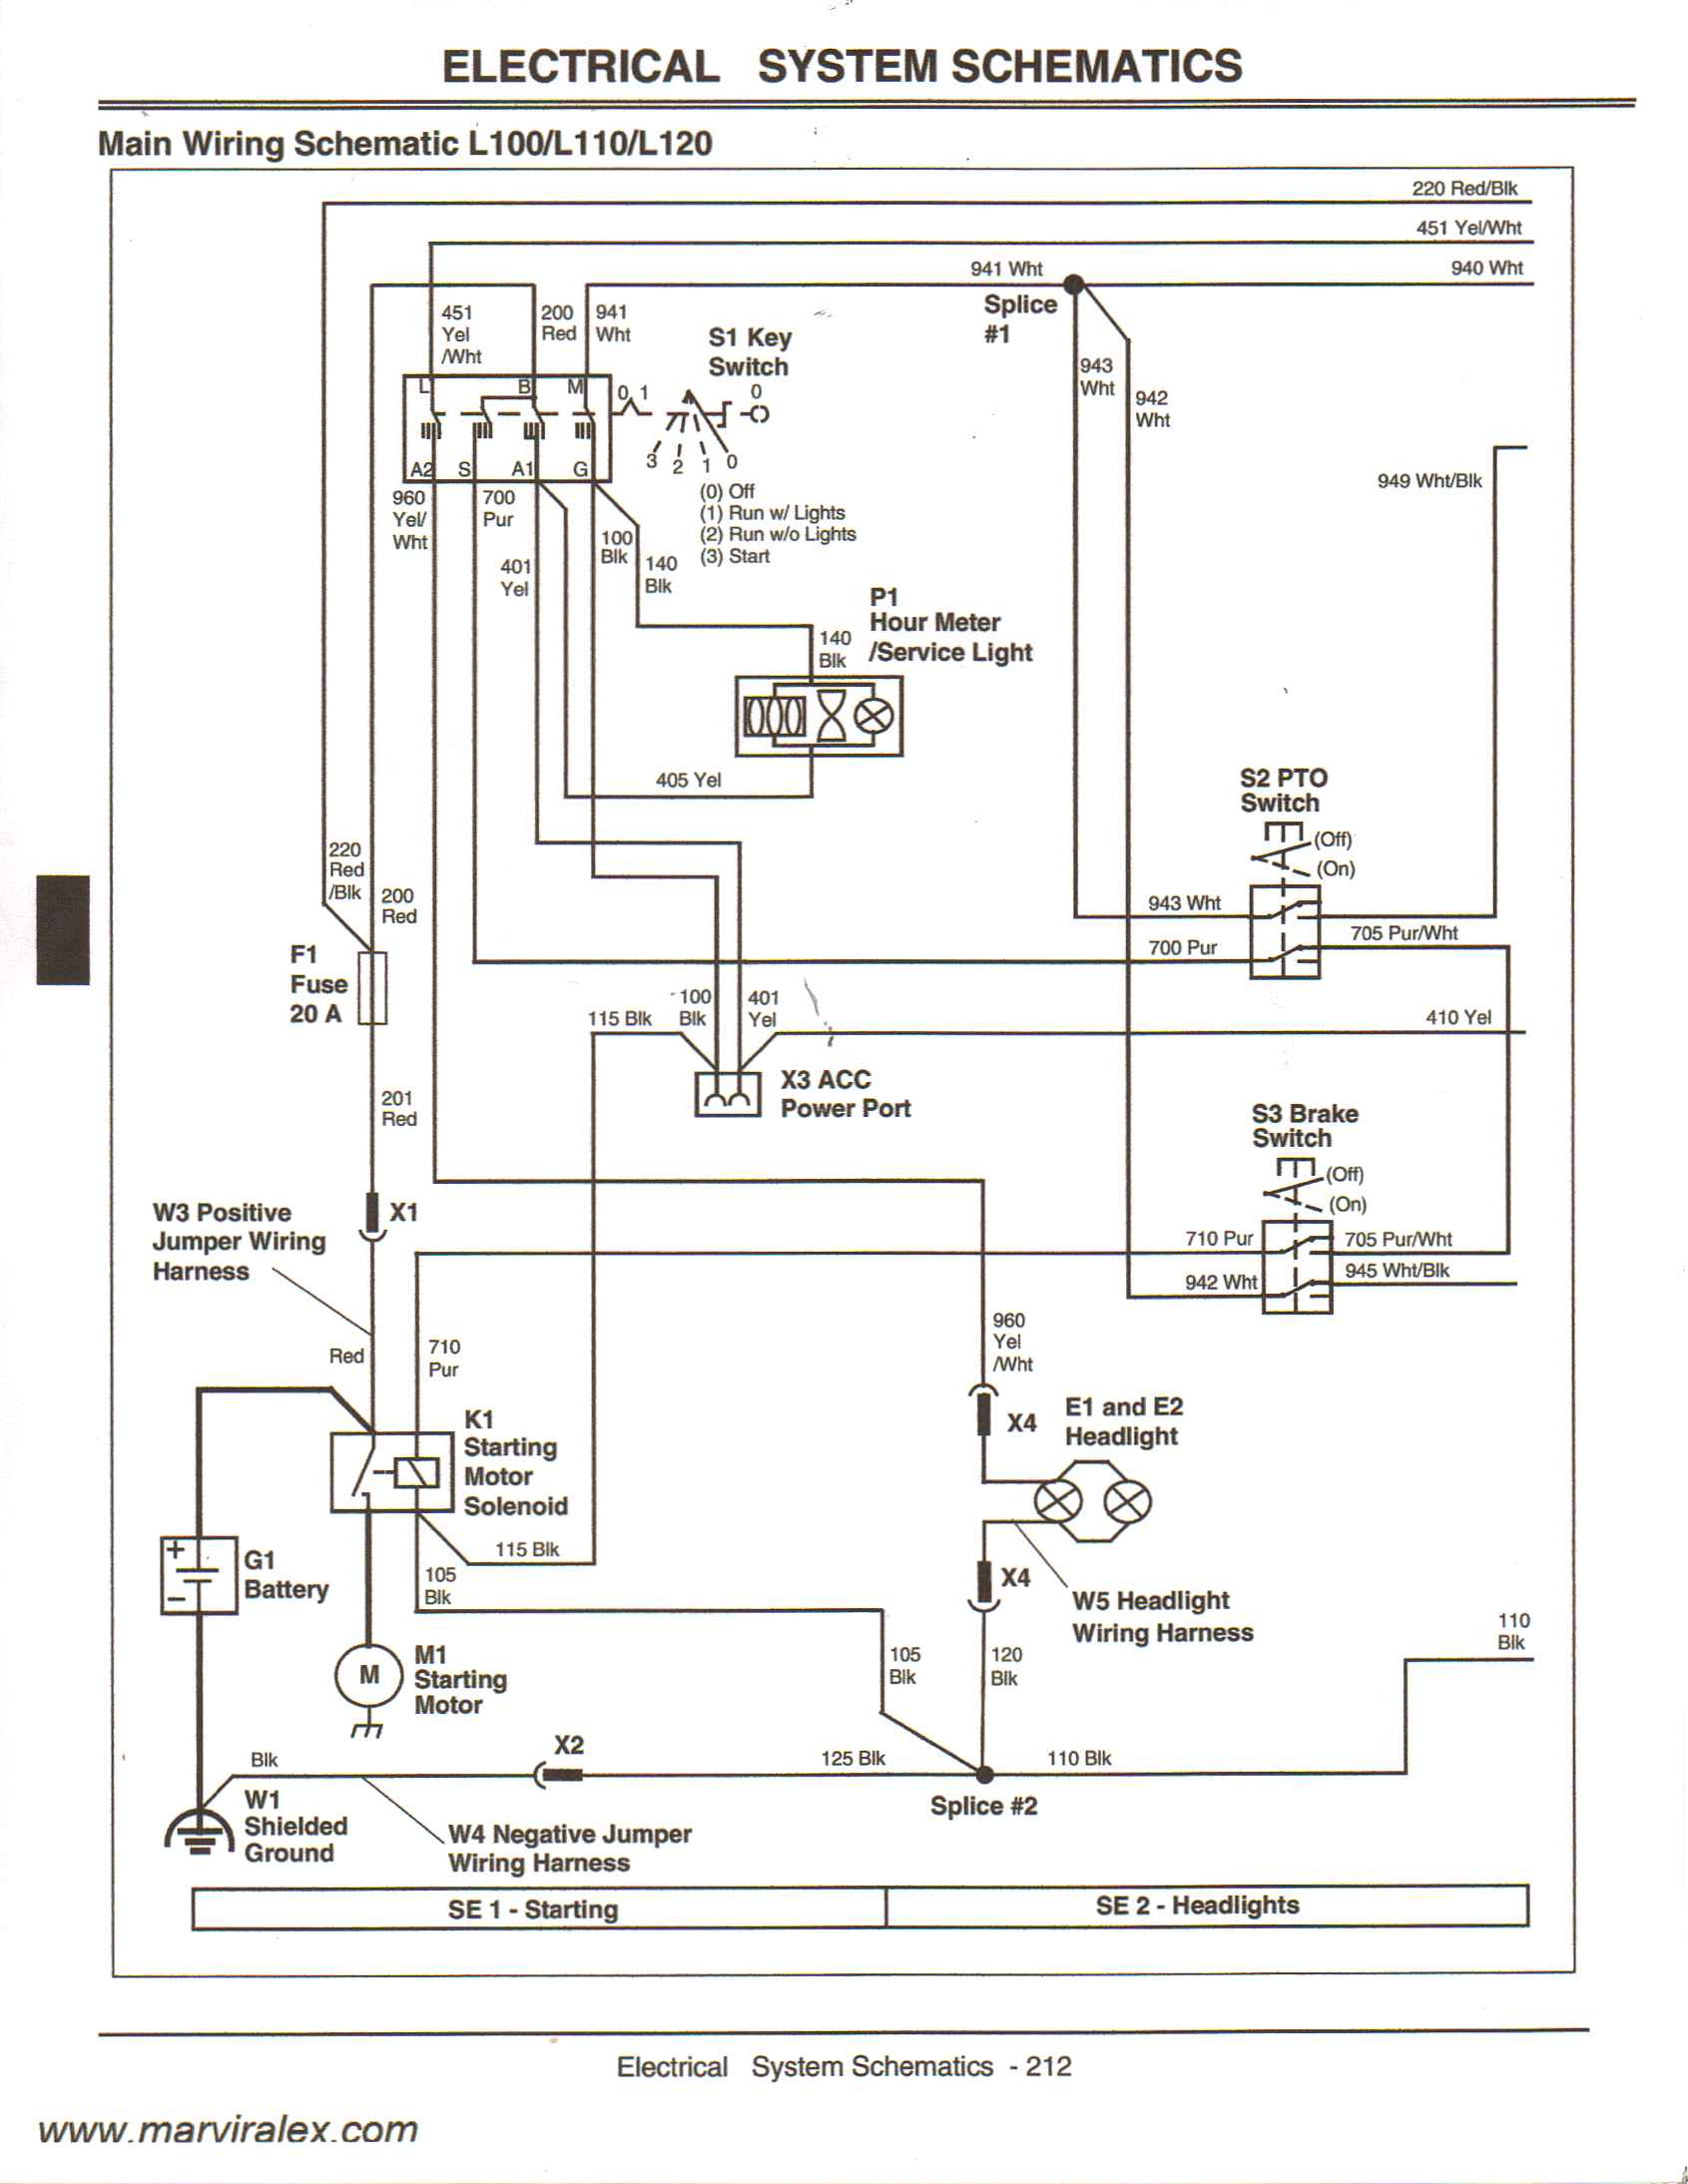 L120 Wiring Diagram - Data Wiring Diagram Schematic - John Deere L120 Wiring Diagram